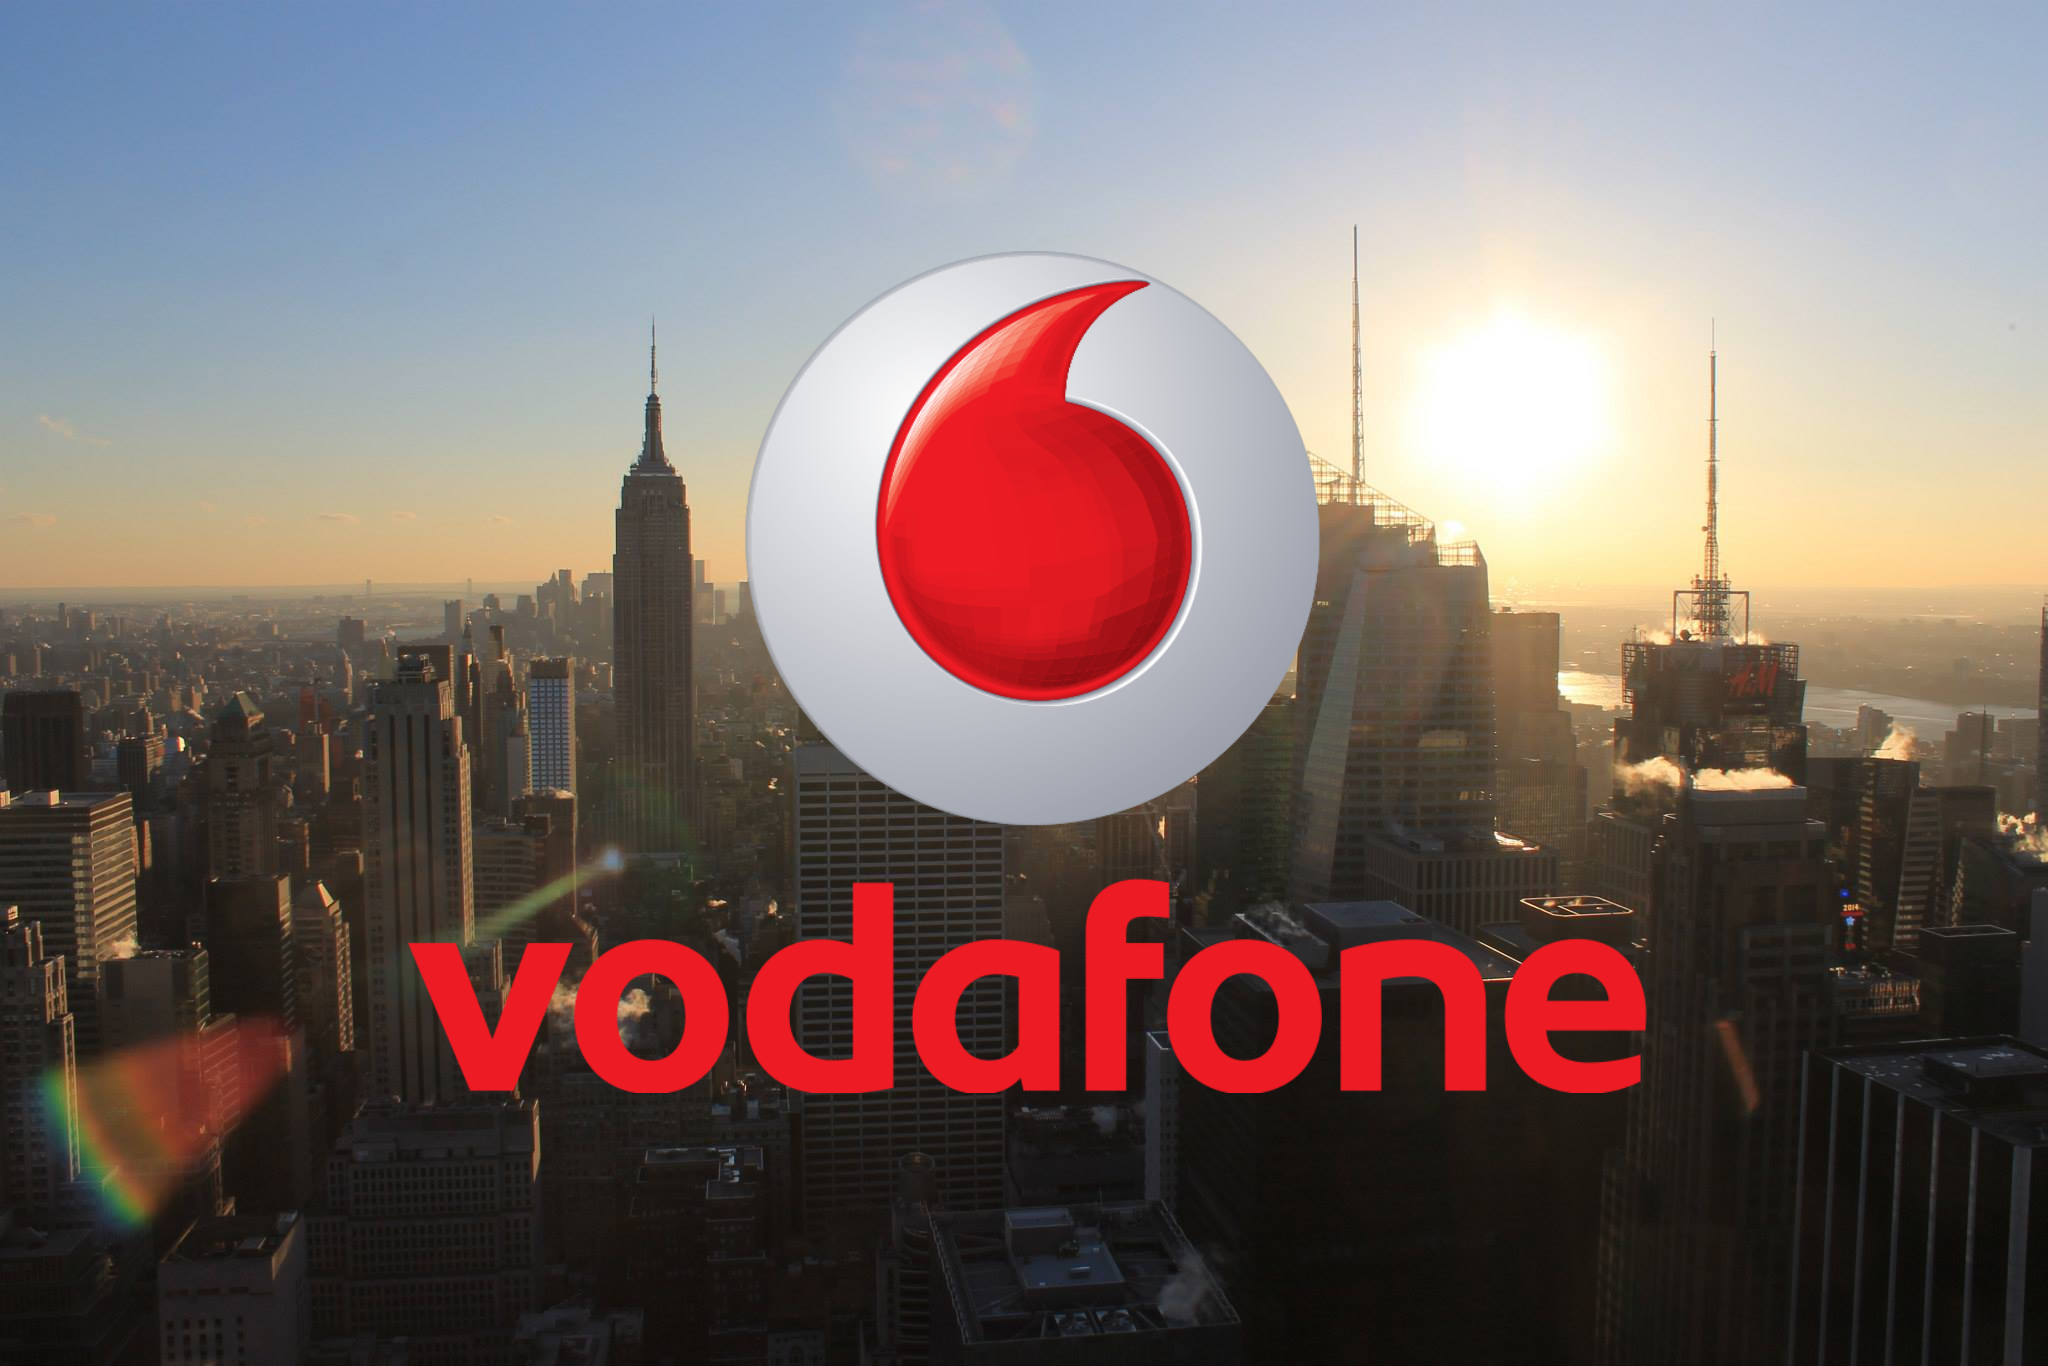 Vodafone becomes latest mobile network to abandon Phones4U - Expert Reviews